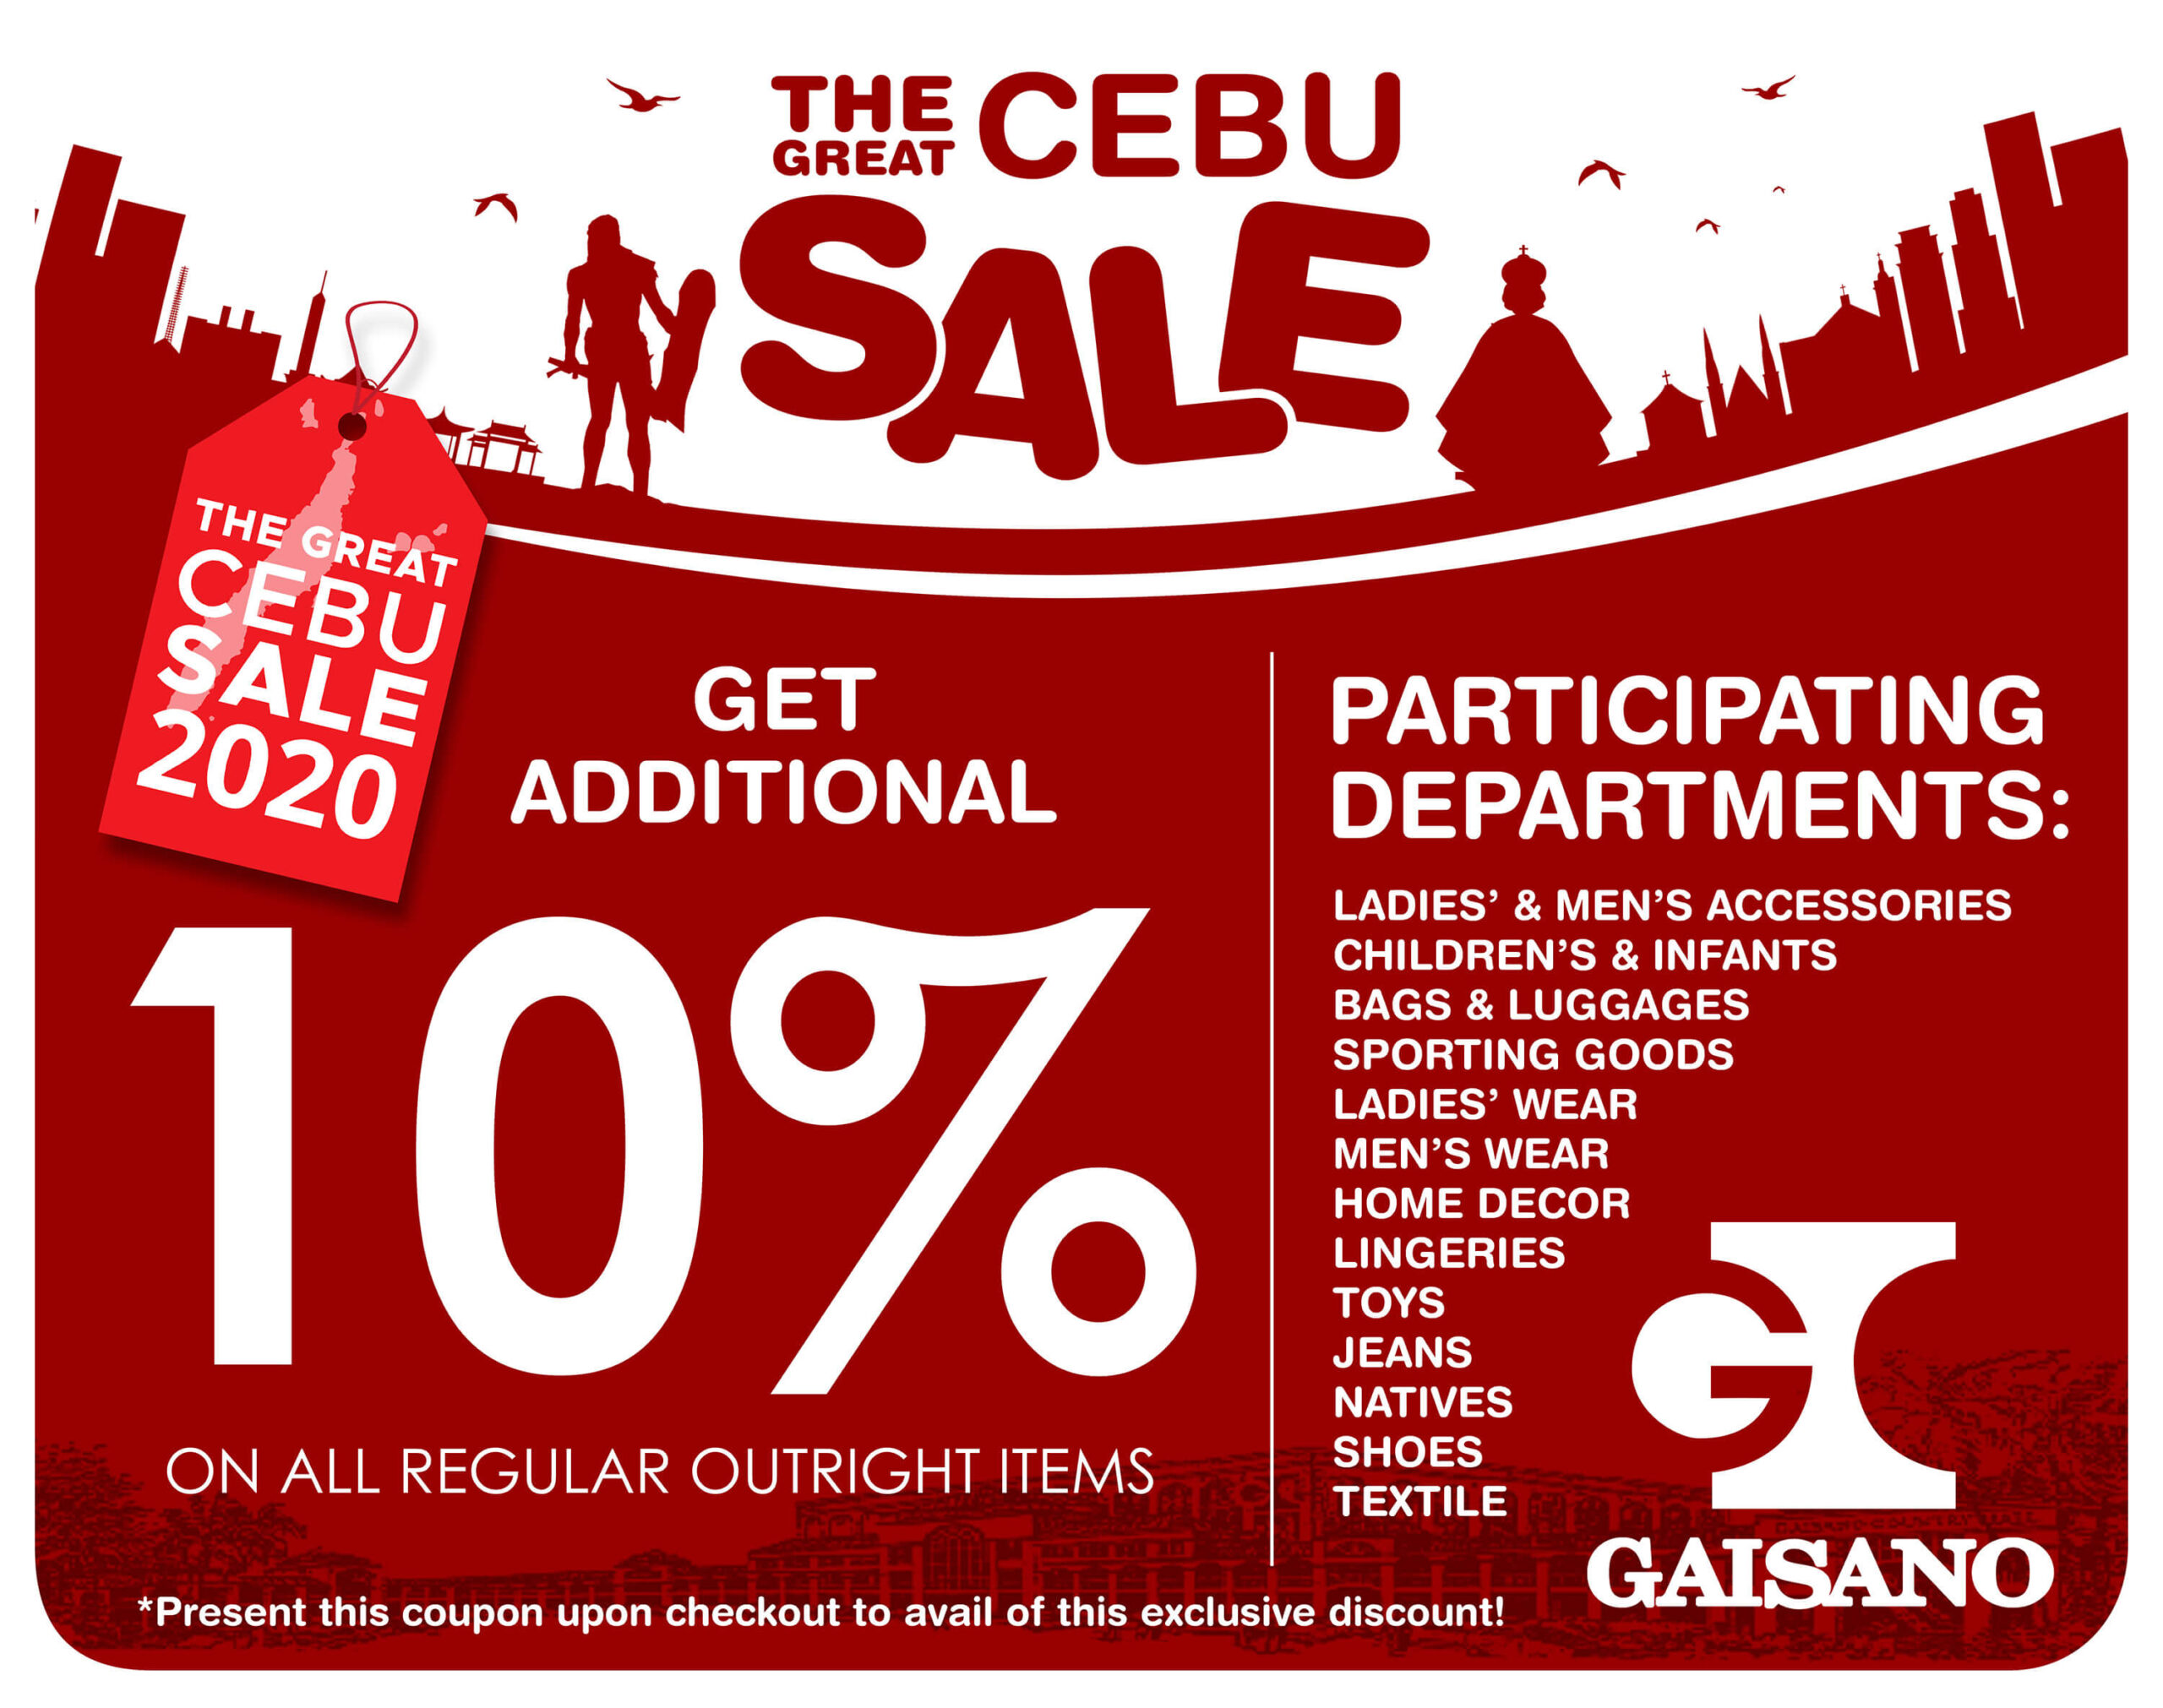 Gaisano Country Mall joins The Great Cebu Sale